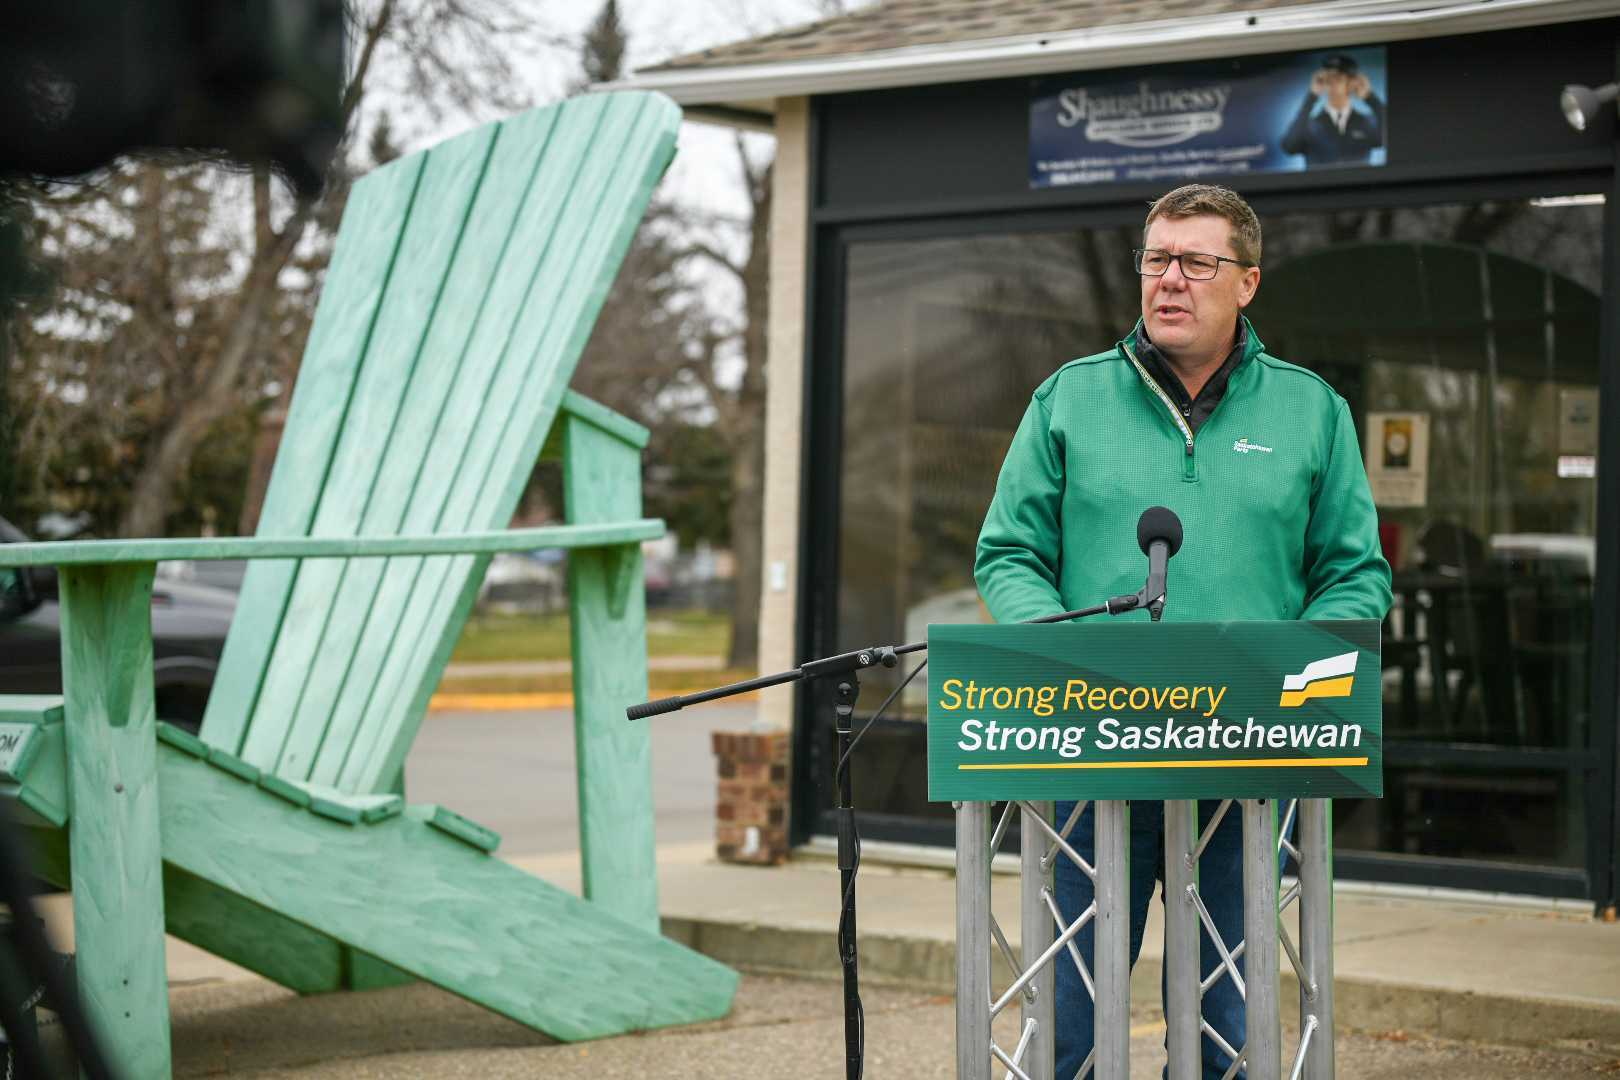 Saskatchewan Party Pledges Support For Small Business As Economy Recovers